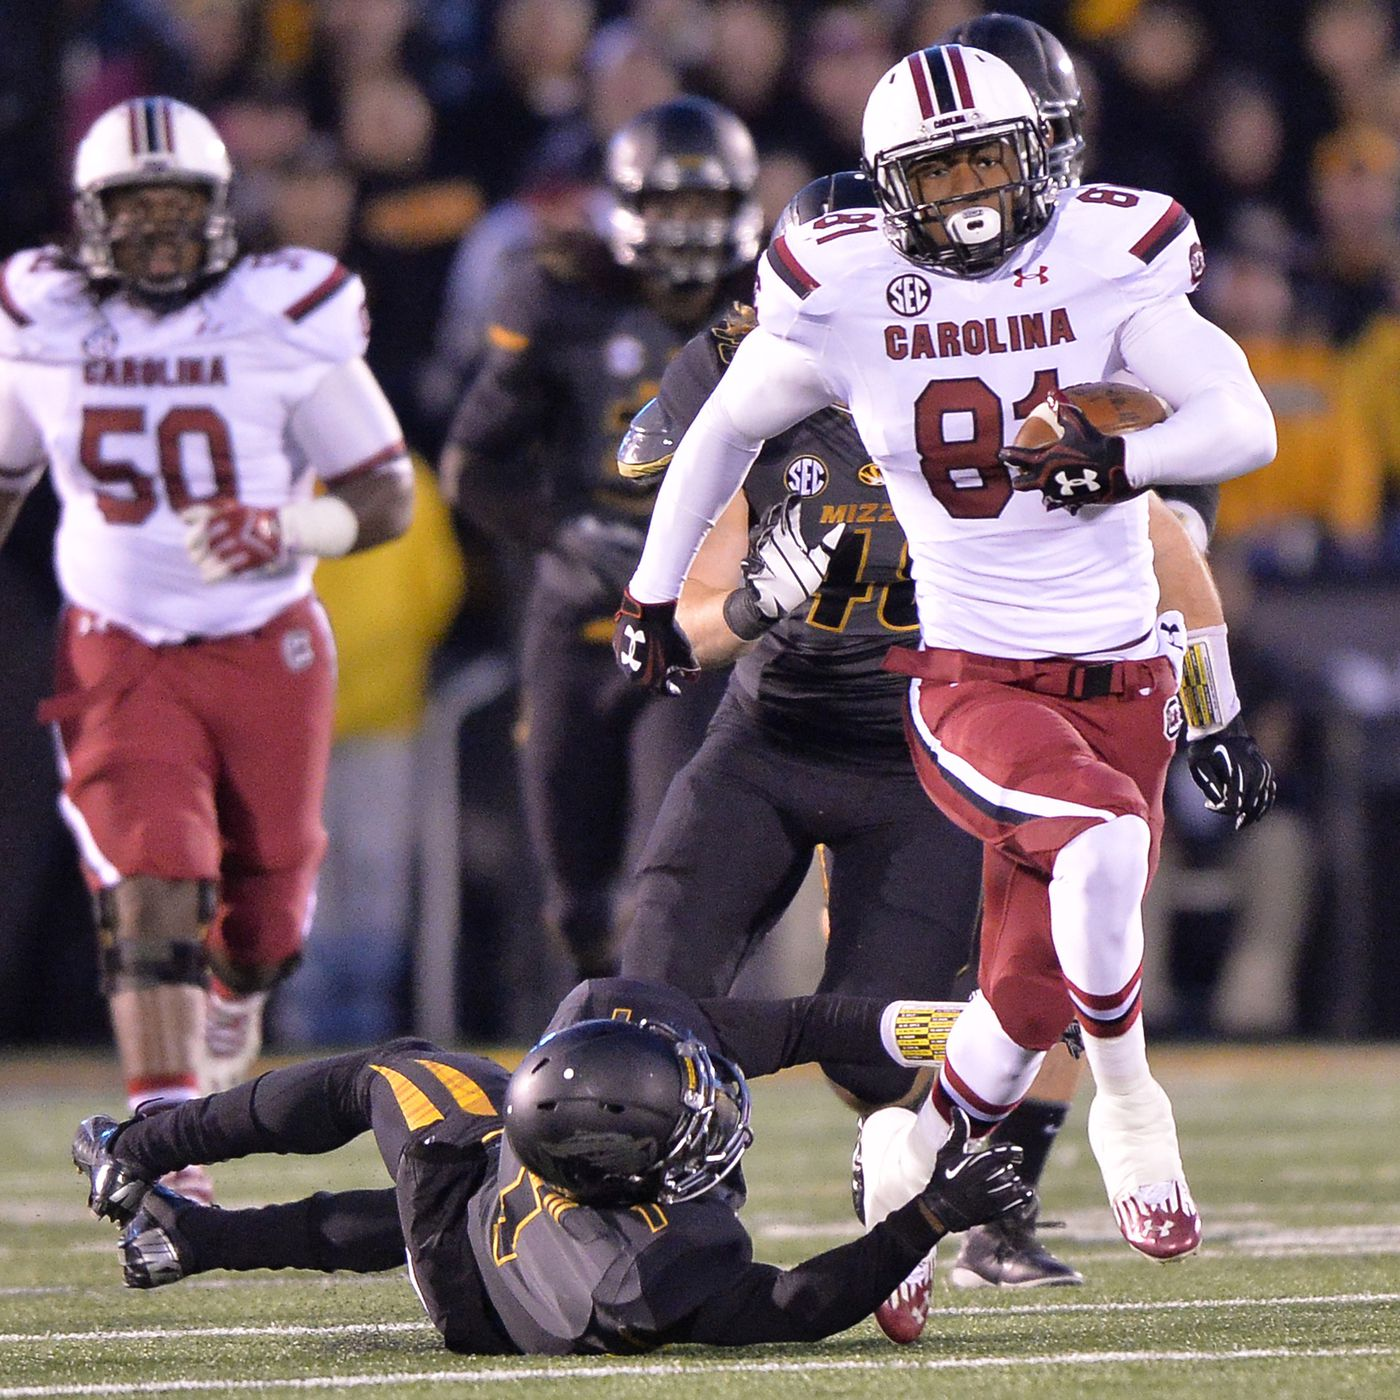 Rory Anderson injury: South Carolina tight end may be back before the  season, says Spurrier - Garnet And Black Attack